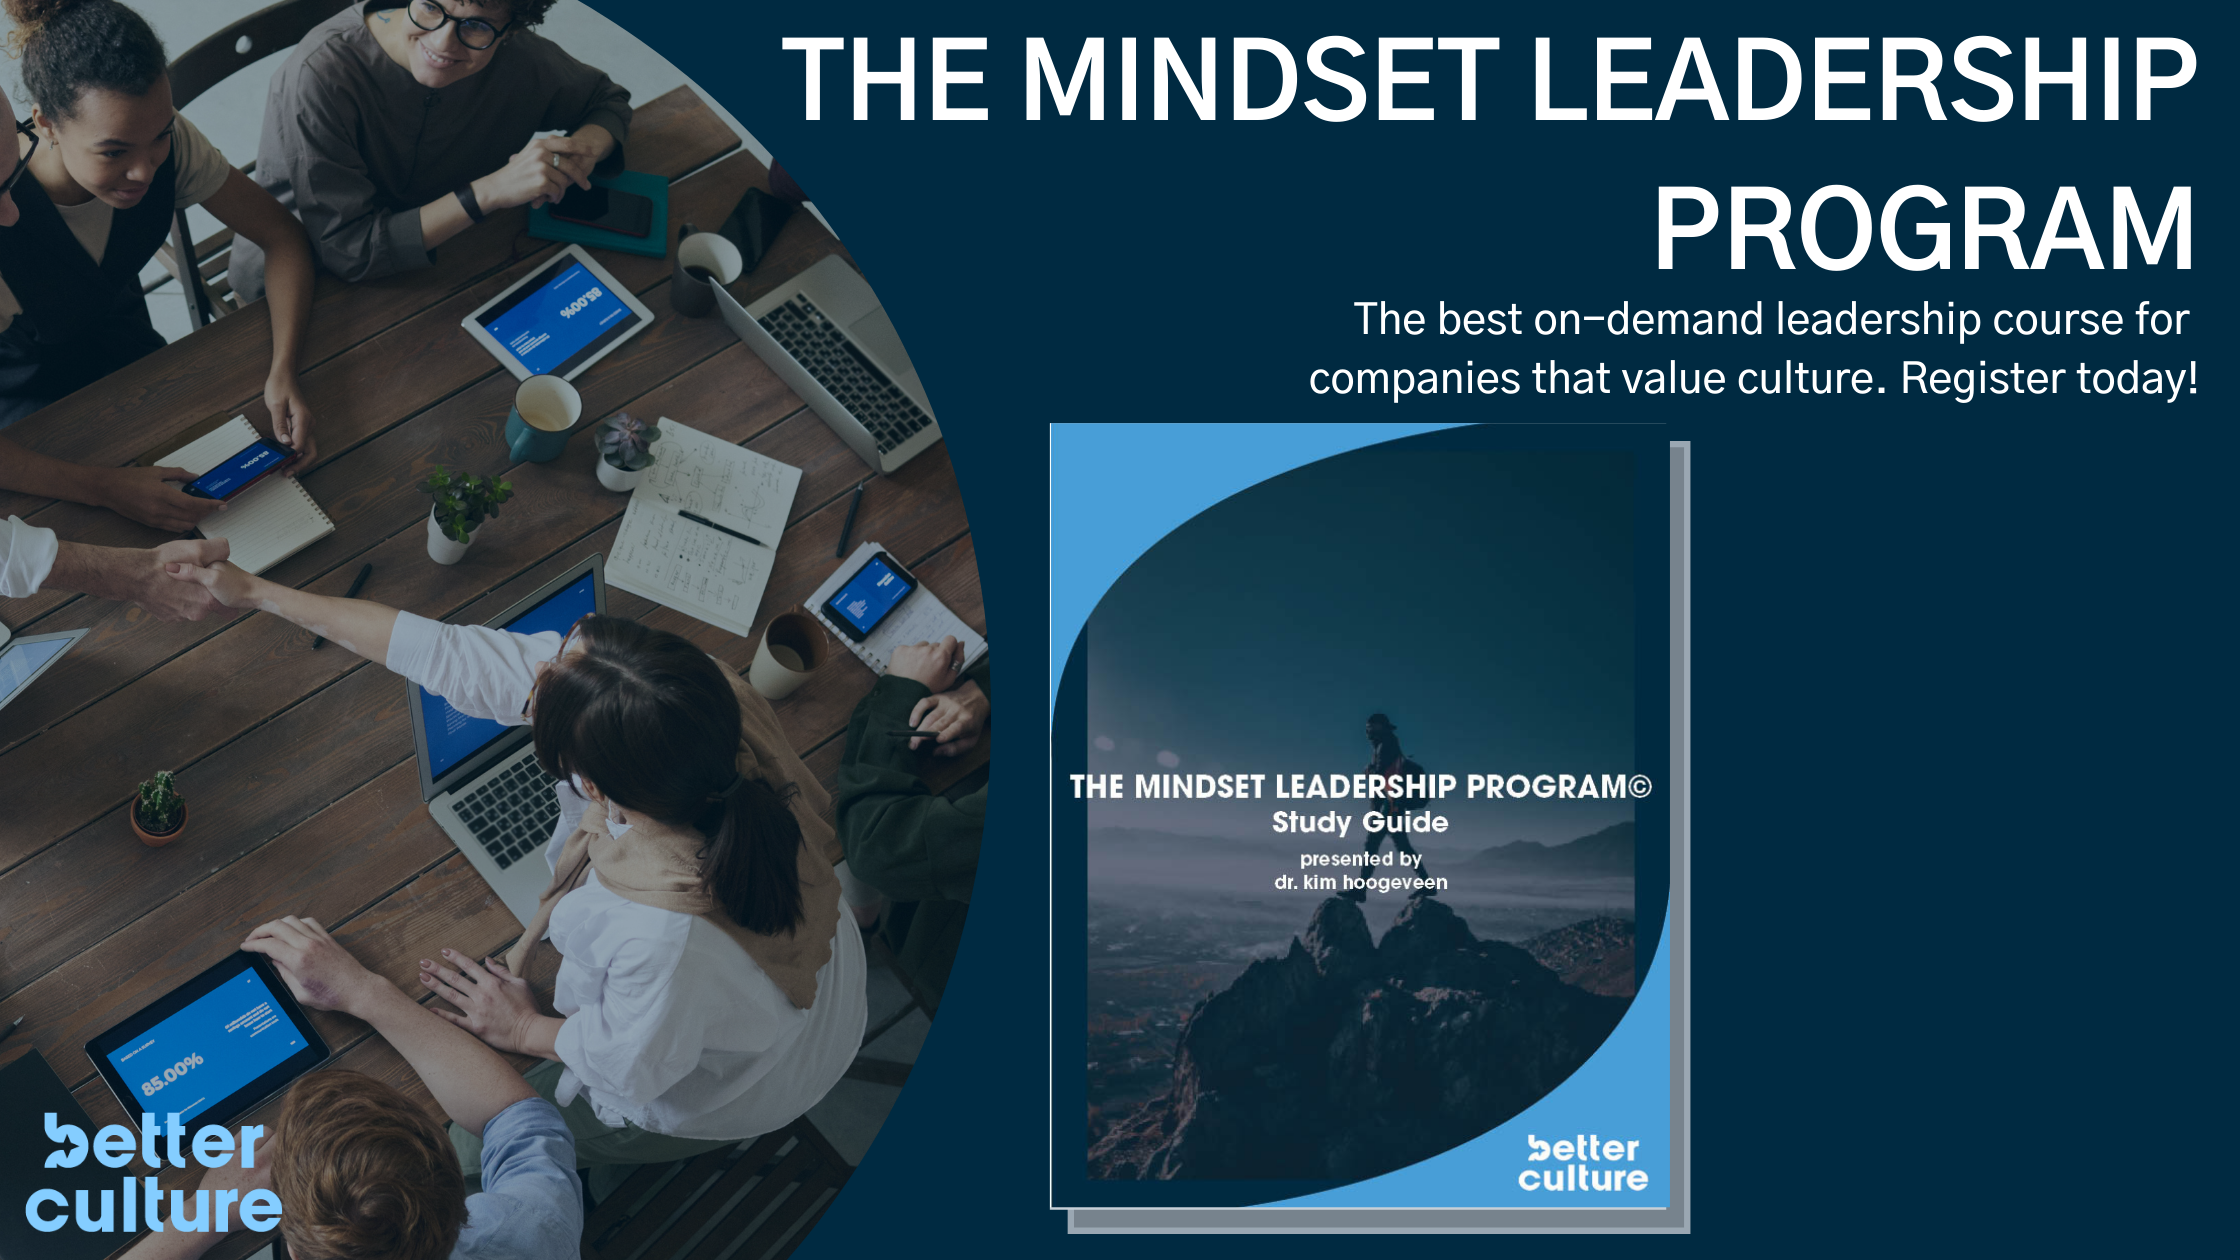 MindSet Leadership Program